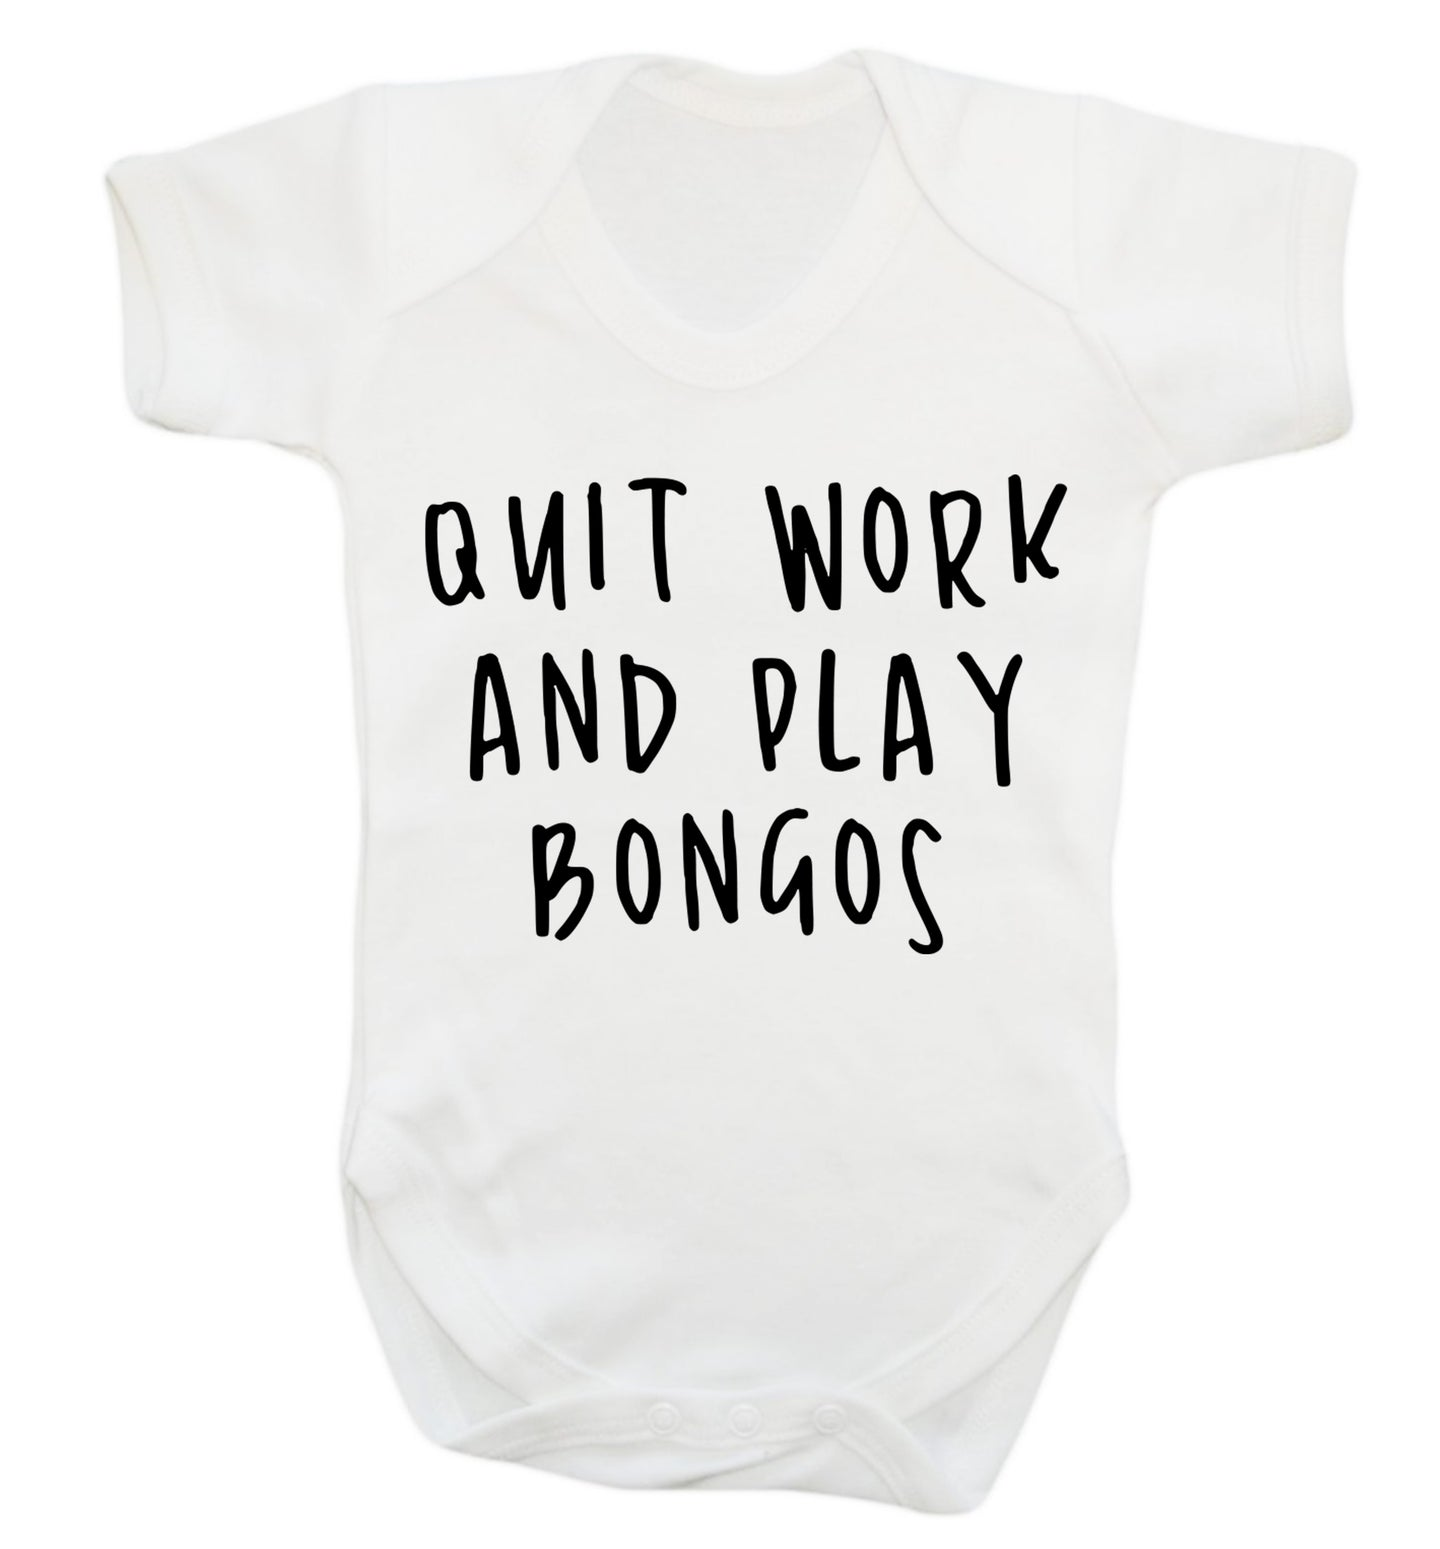 Quit work and play bongos Baby Vest white 18-24 months